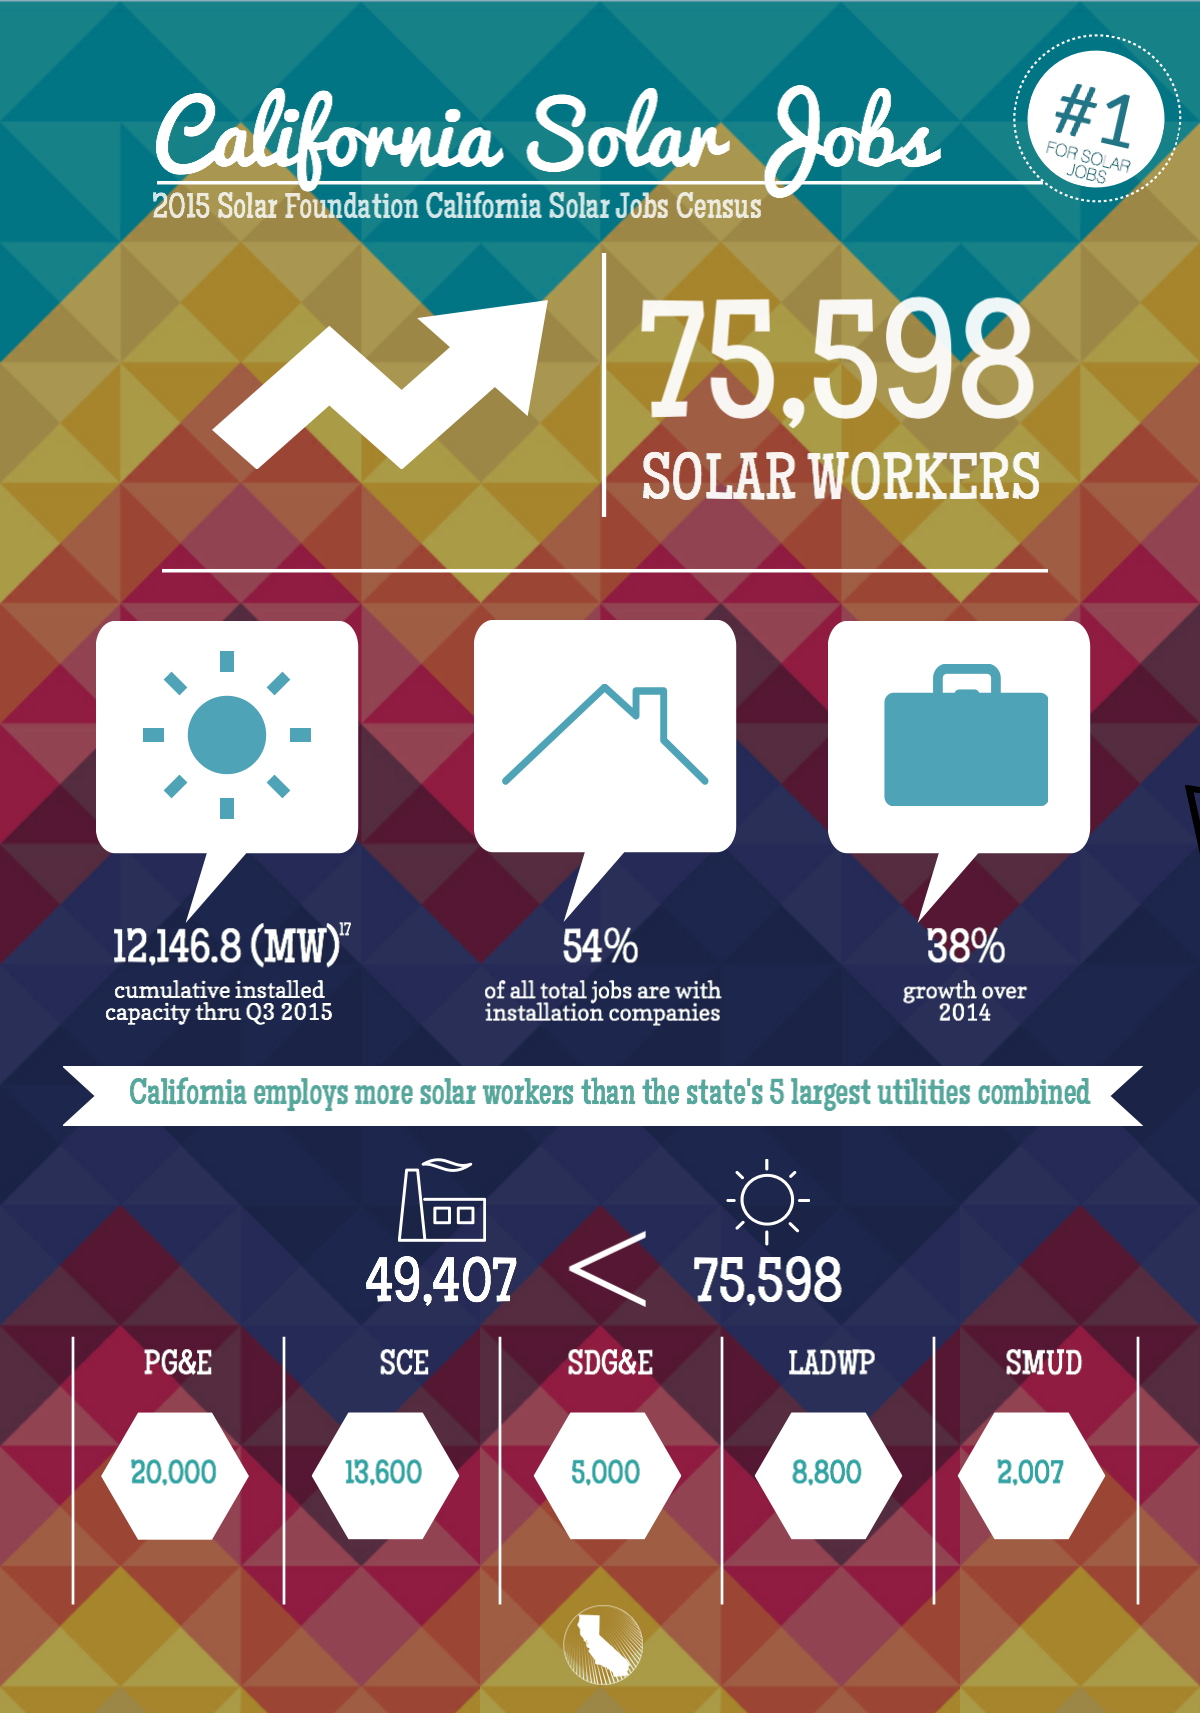 Read the Full Solar Foundation Solar Jobs Census 2015 here.